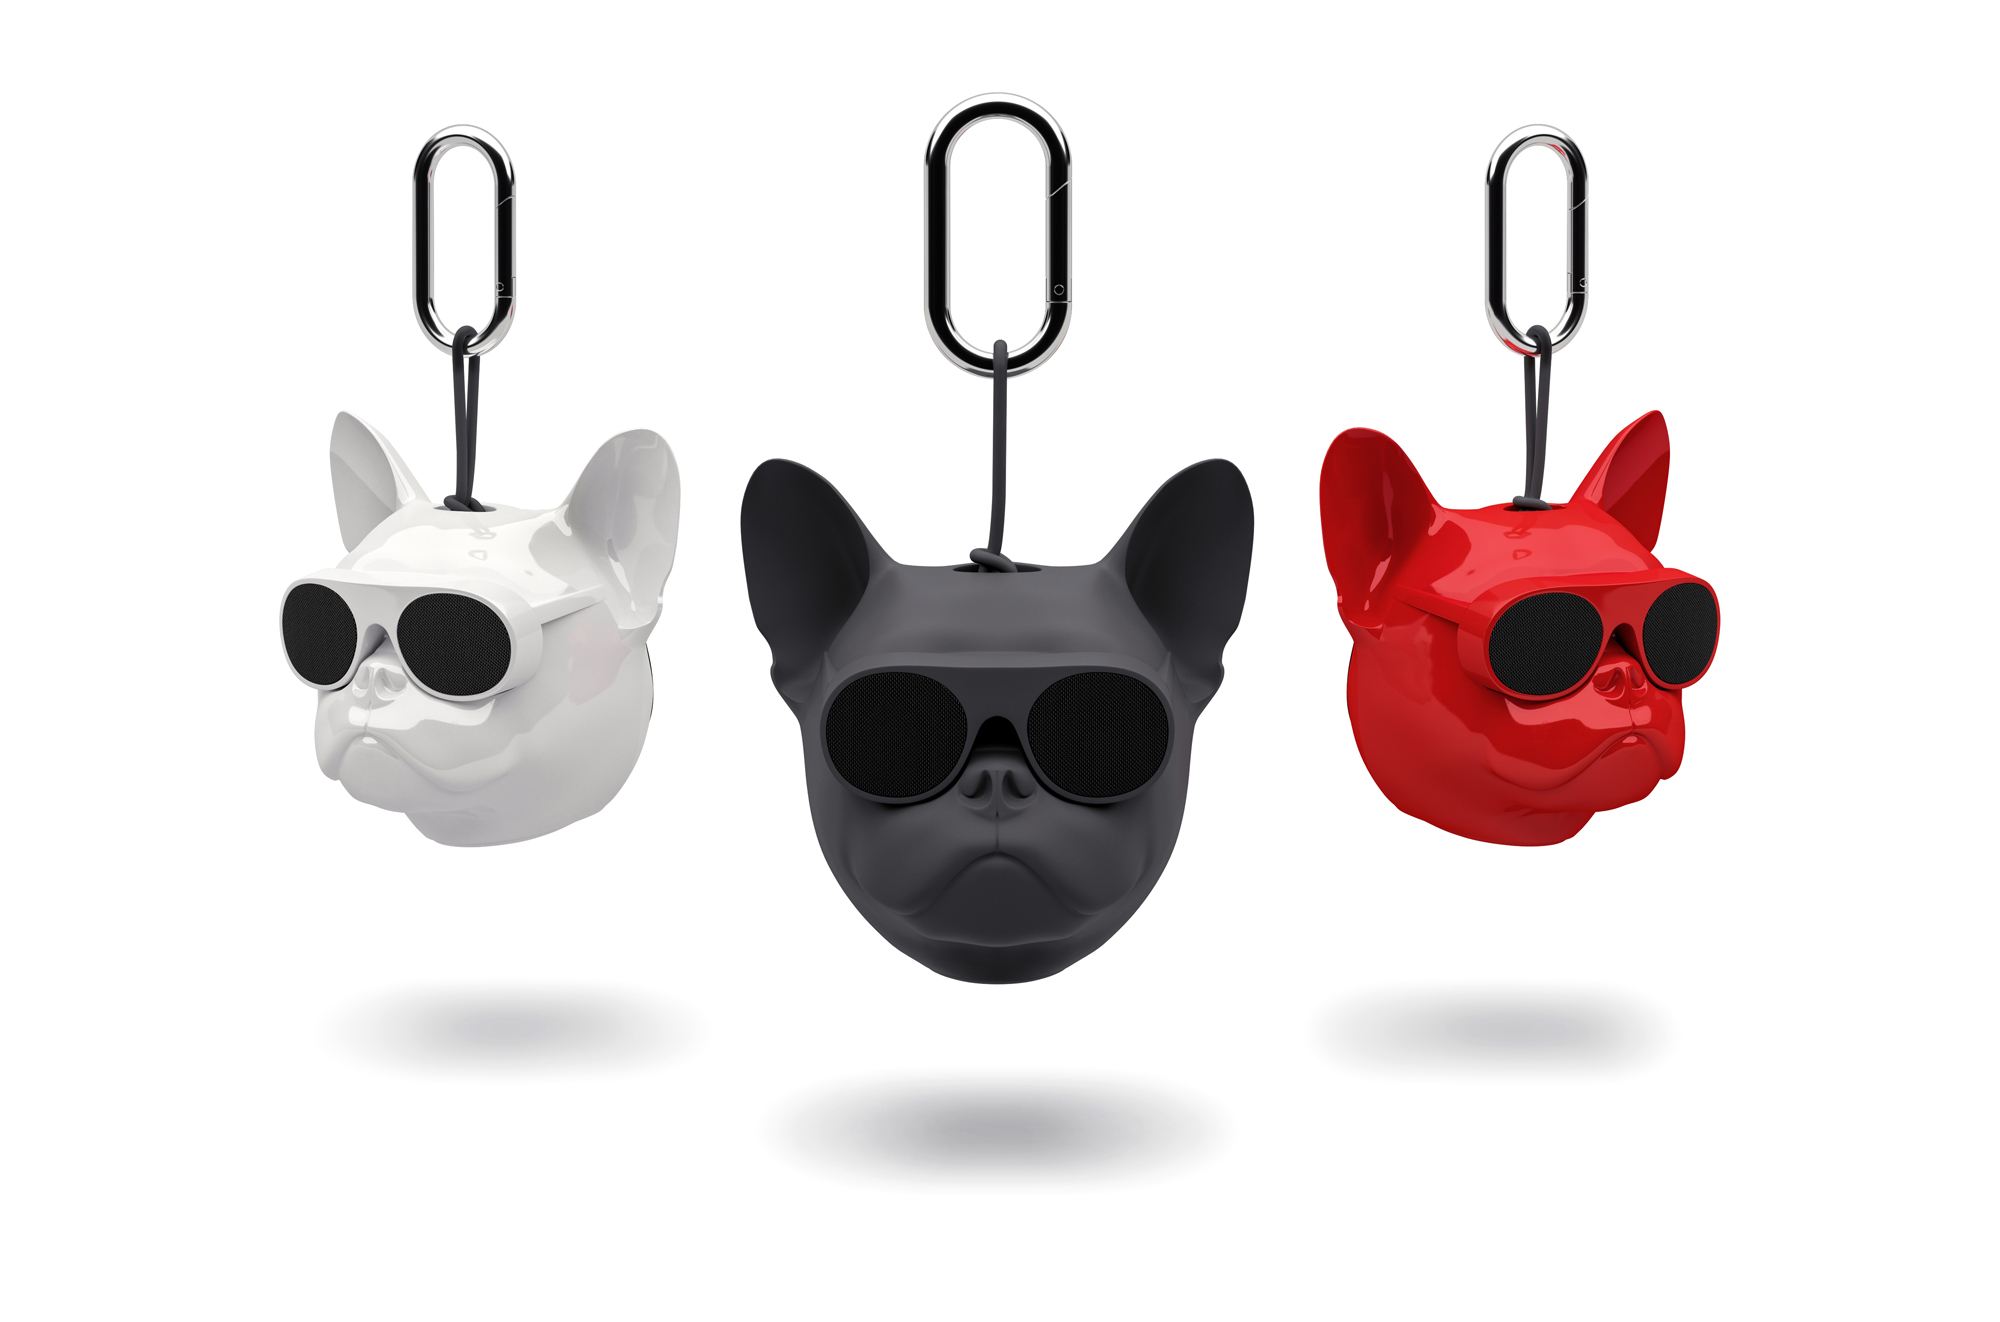 Jarre Aerobull Speakers in red, black and white (Currys PC World/PA)